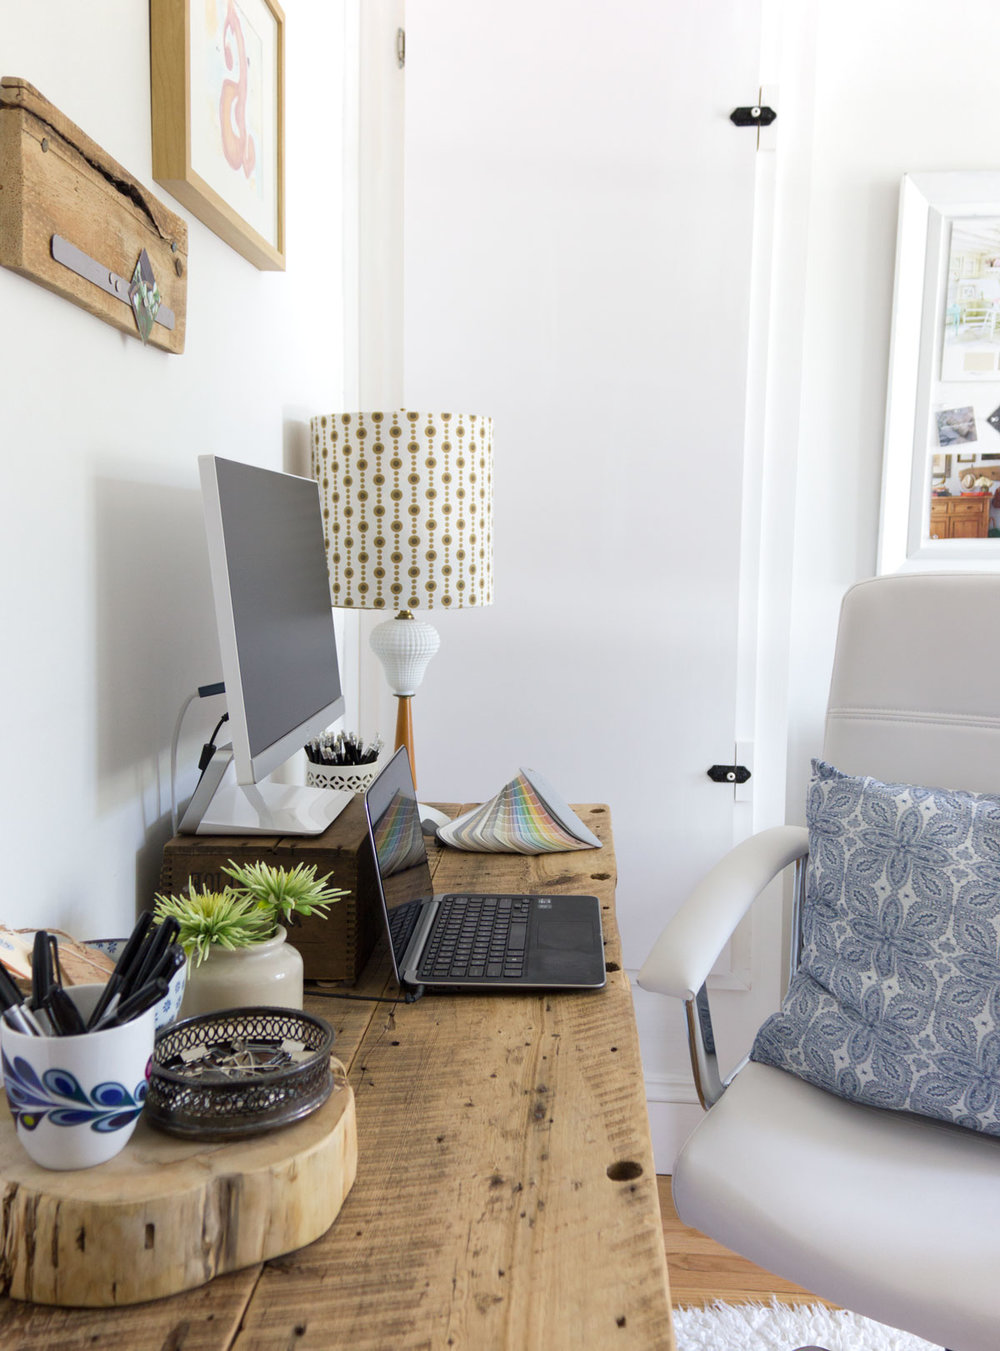 How to design a functional, calm and productive workspace